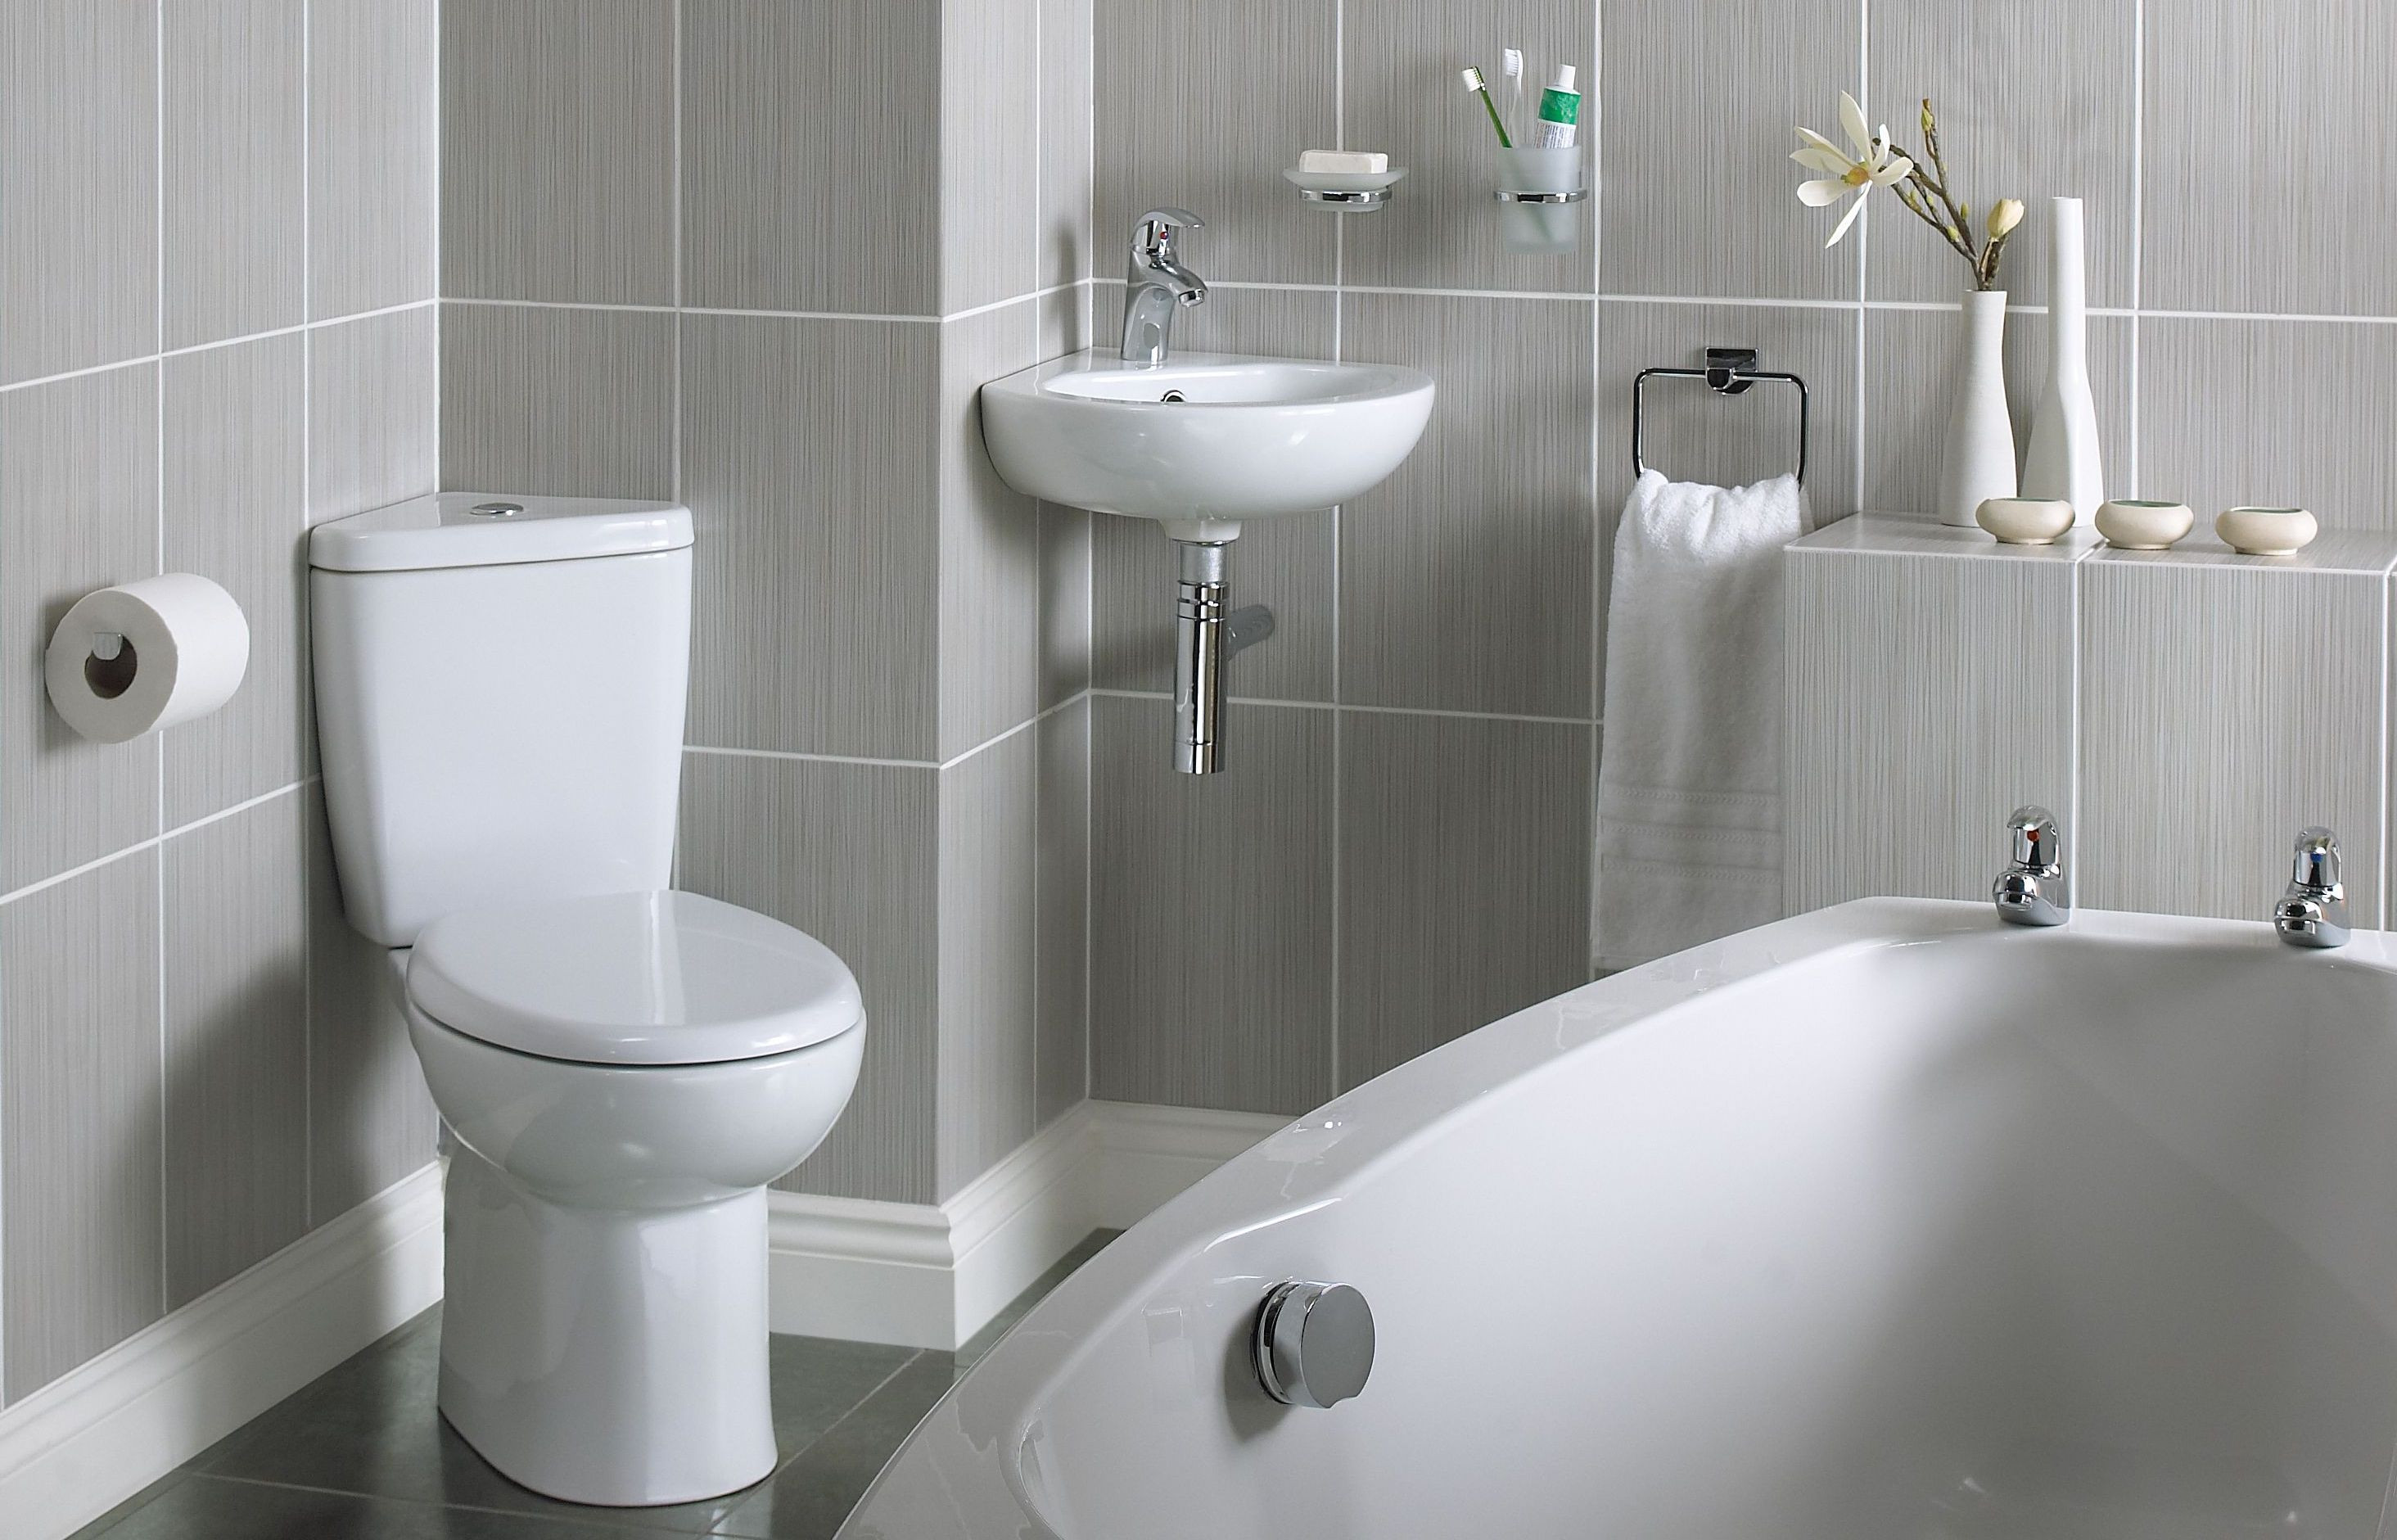 Best ideas about Small Bathroom Plans . Save or Pin Small bathroom ideas Ideas & Advice Now.